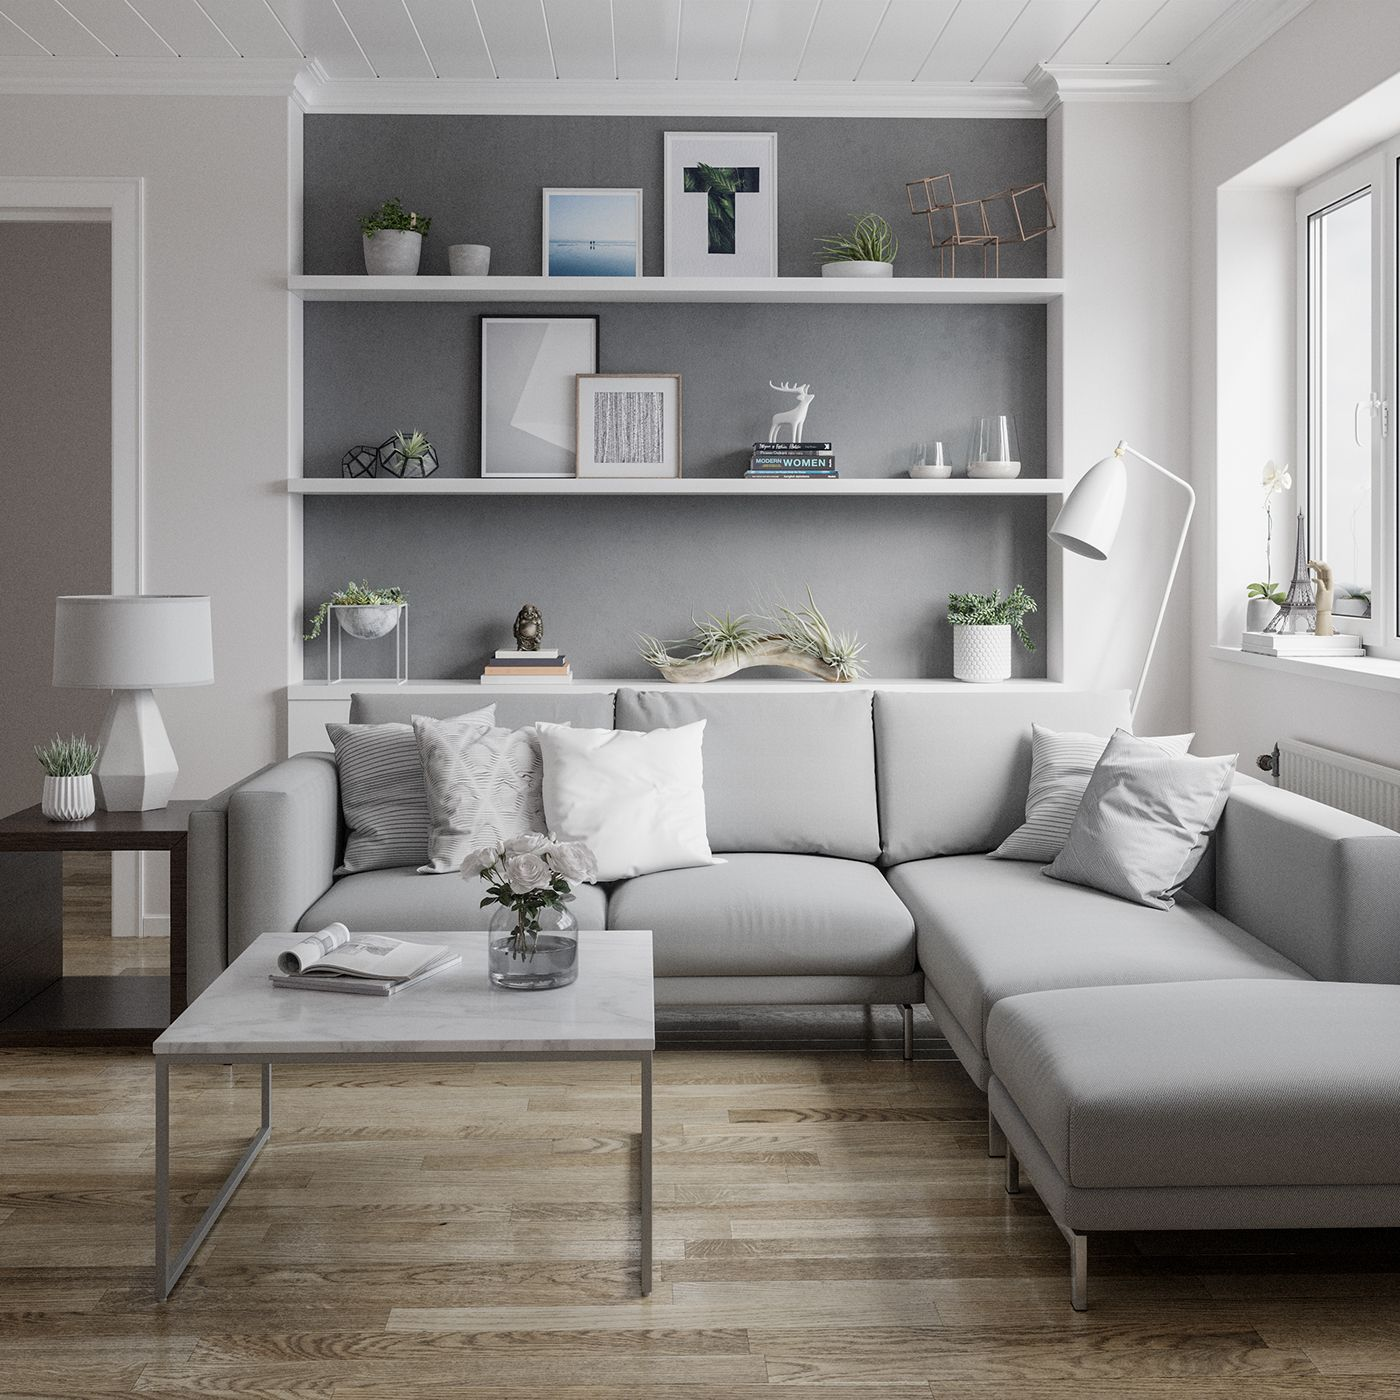 46 Cozy Living Room Ideas And Designs For 2019: Scandinavian Living Room On Behance